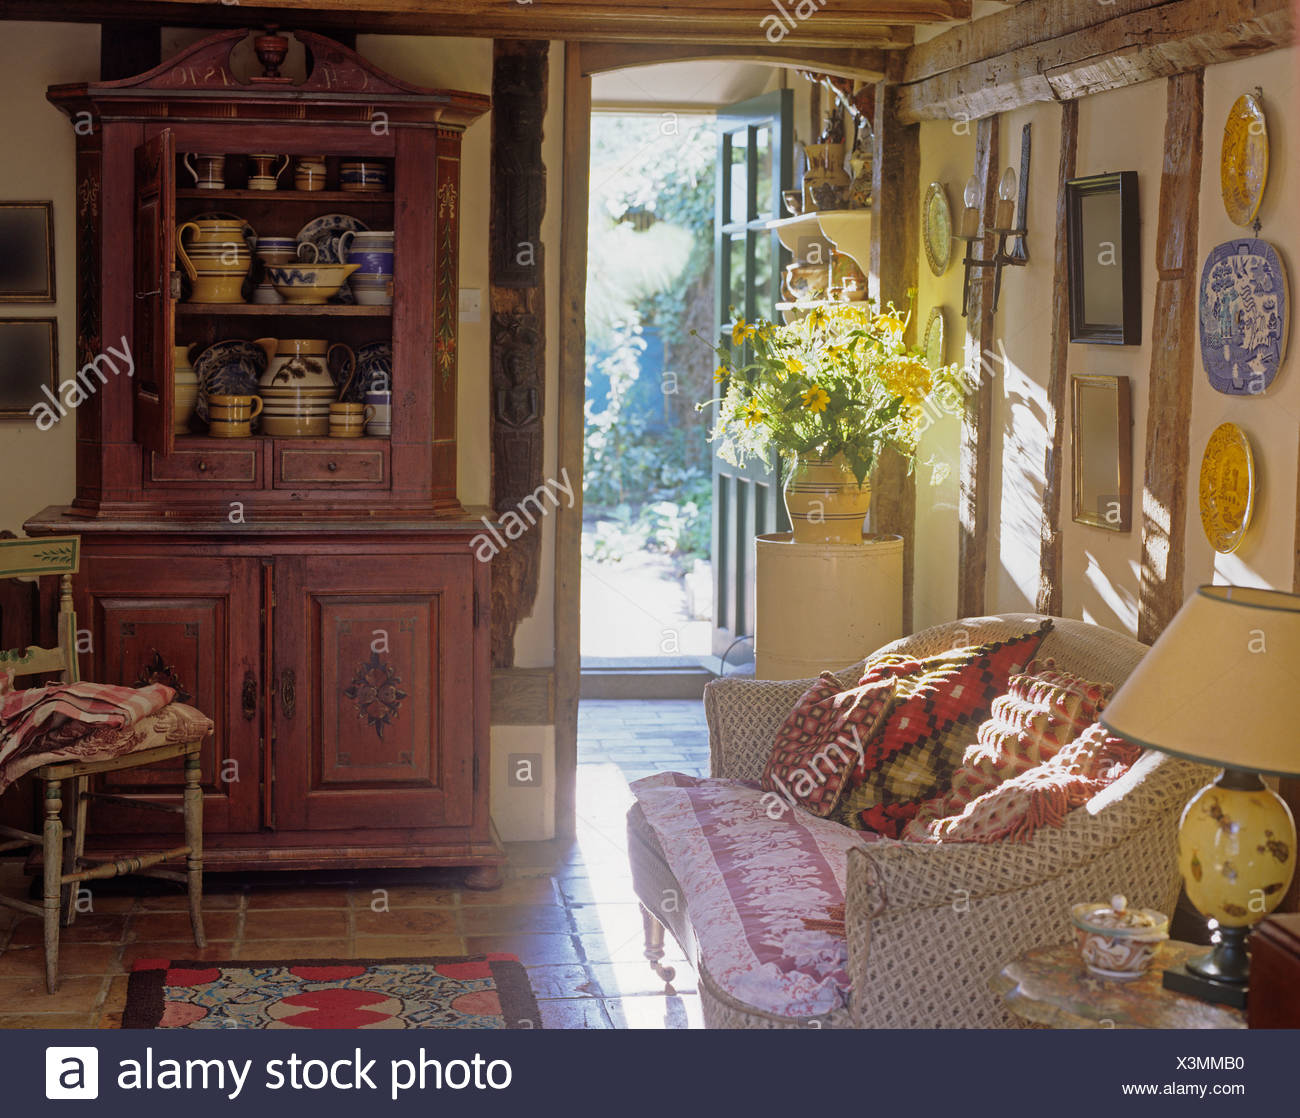 Outstanding Painted Pine Dresser And Floral Sofa Piled With Cushions In Cjindustries Chair Design For Home Cjindustriesco